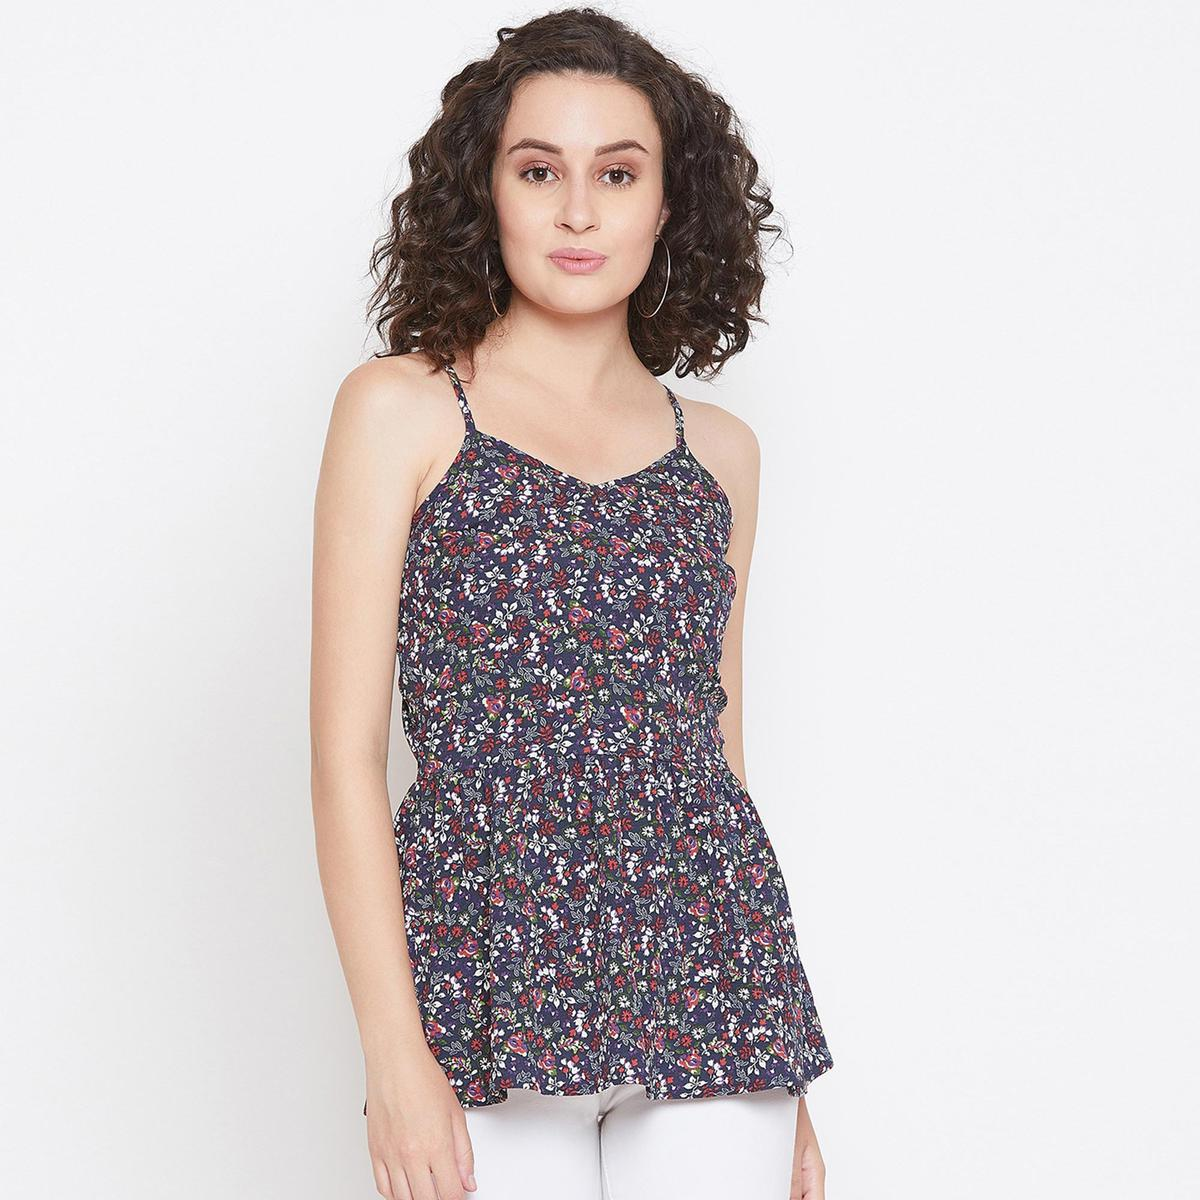 Majesty Navy Blue Colored Casual Wear Floral Print Fit And Flare Crepe Top With Adjustable Strap